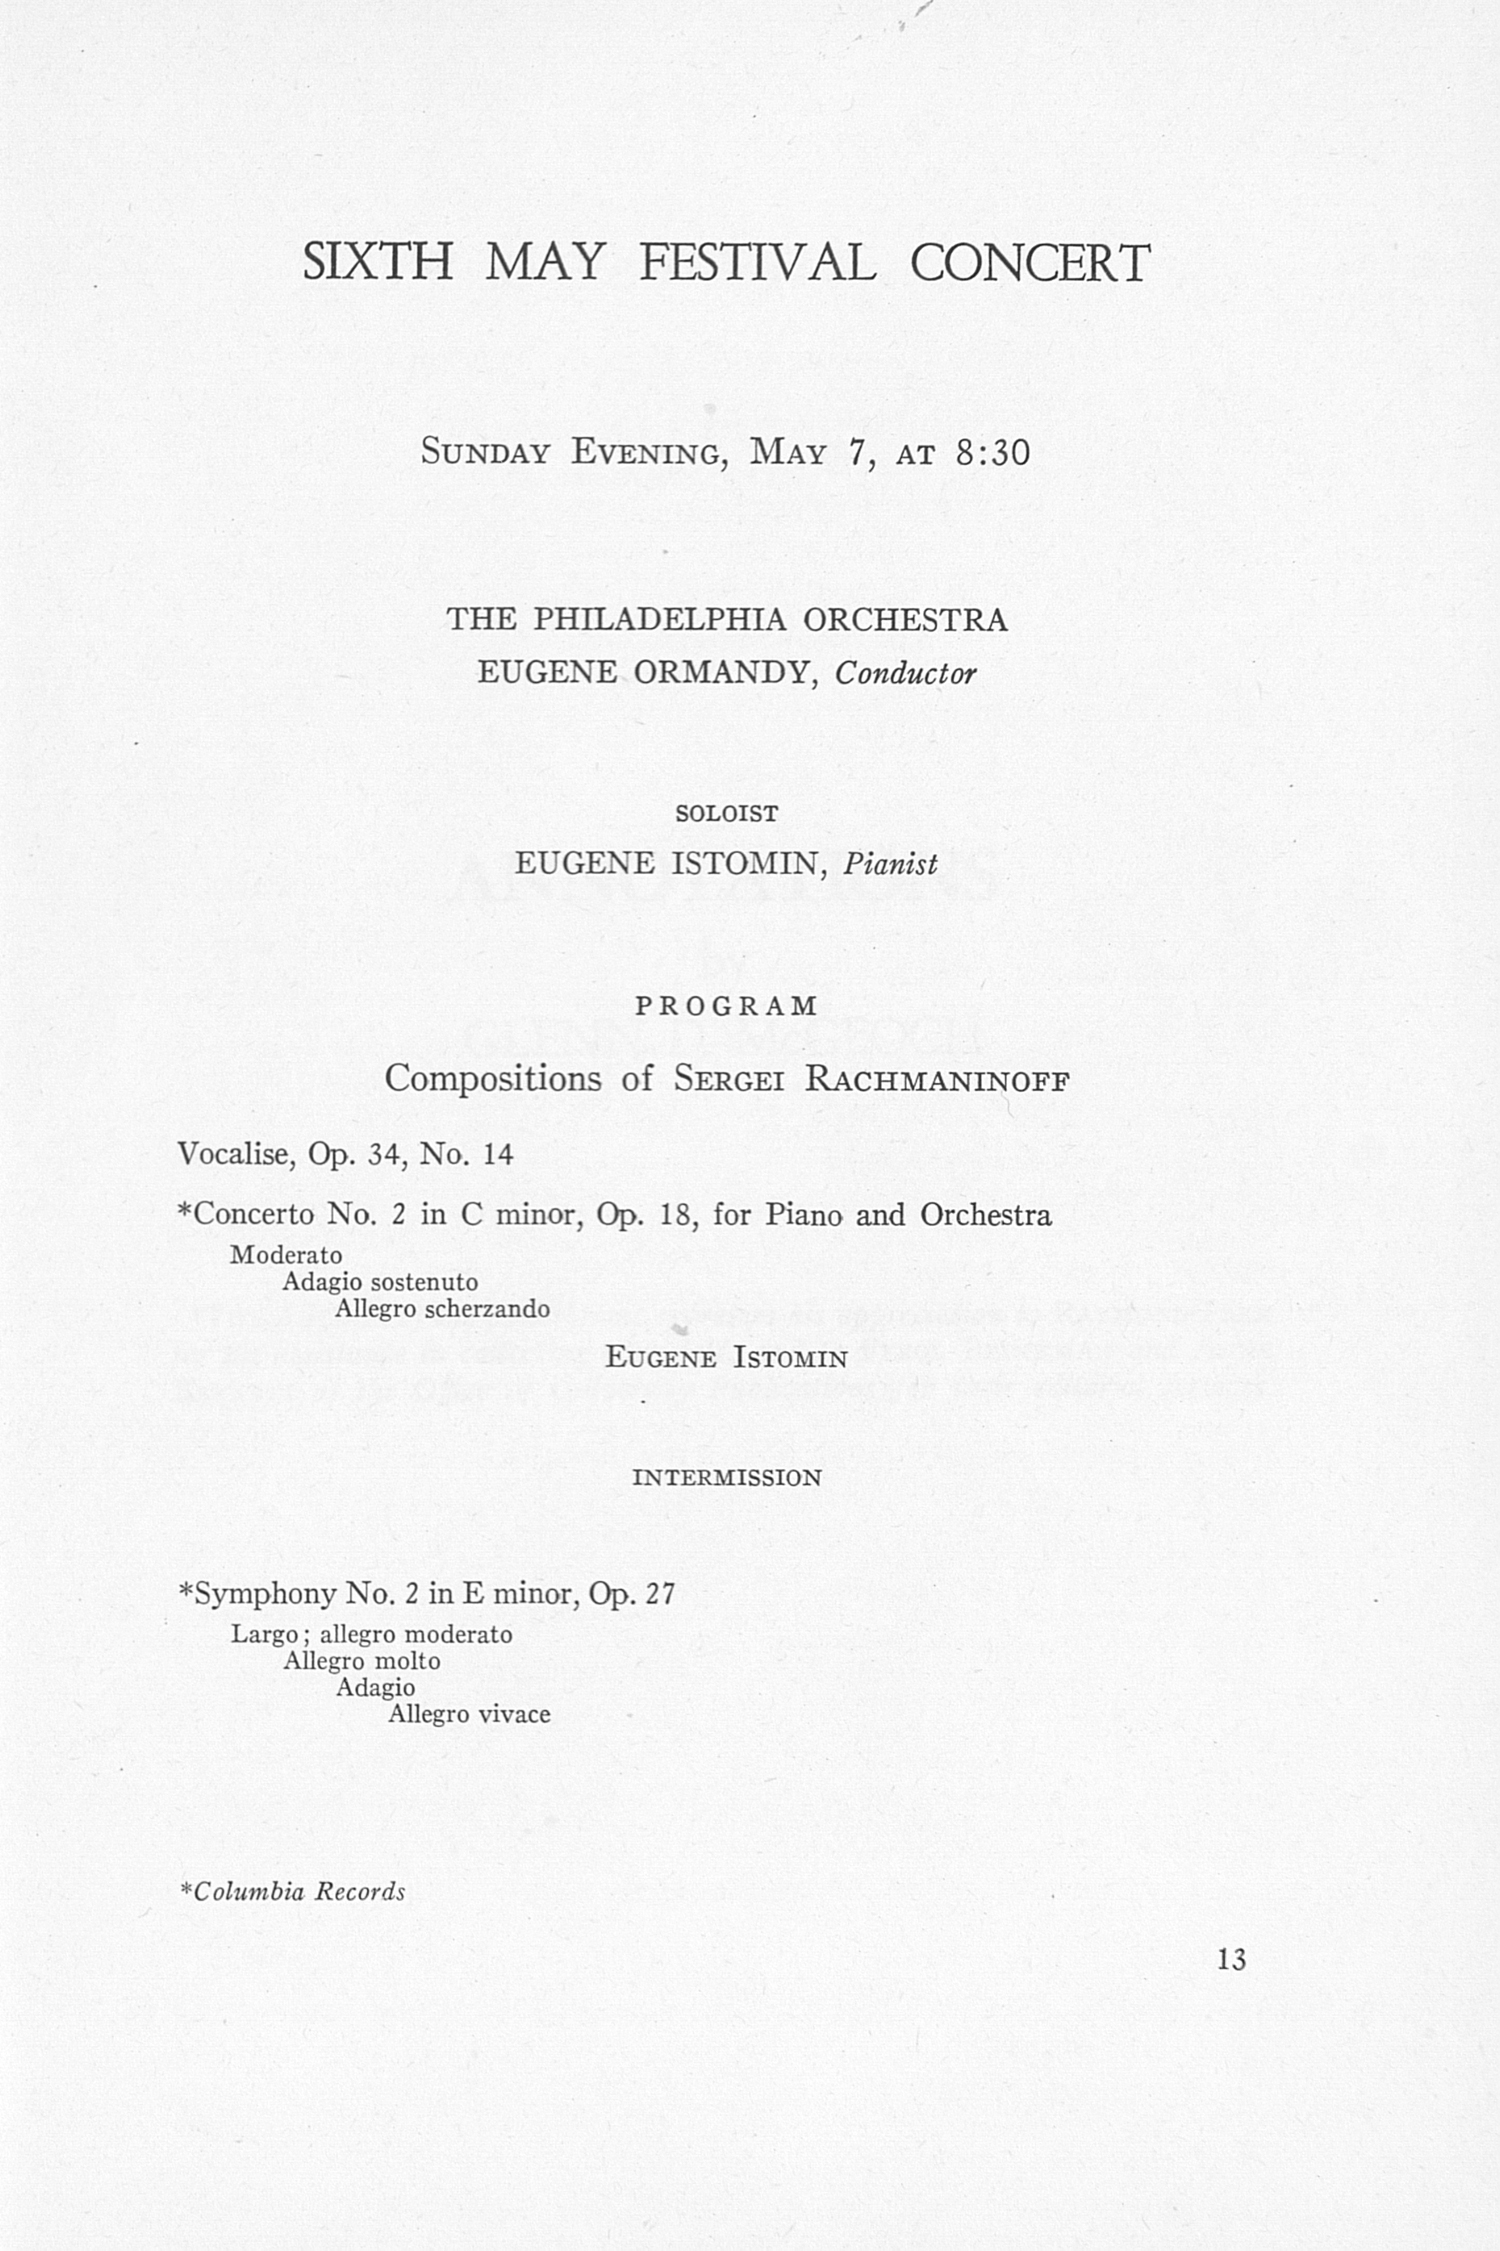 UMS Concert Program, May 4, 5, 6, 7, 1961: The Sixty-eighth Annual Ann Arbor May Festival -- The Philadelphia Orchestra image